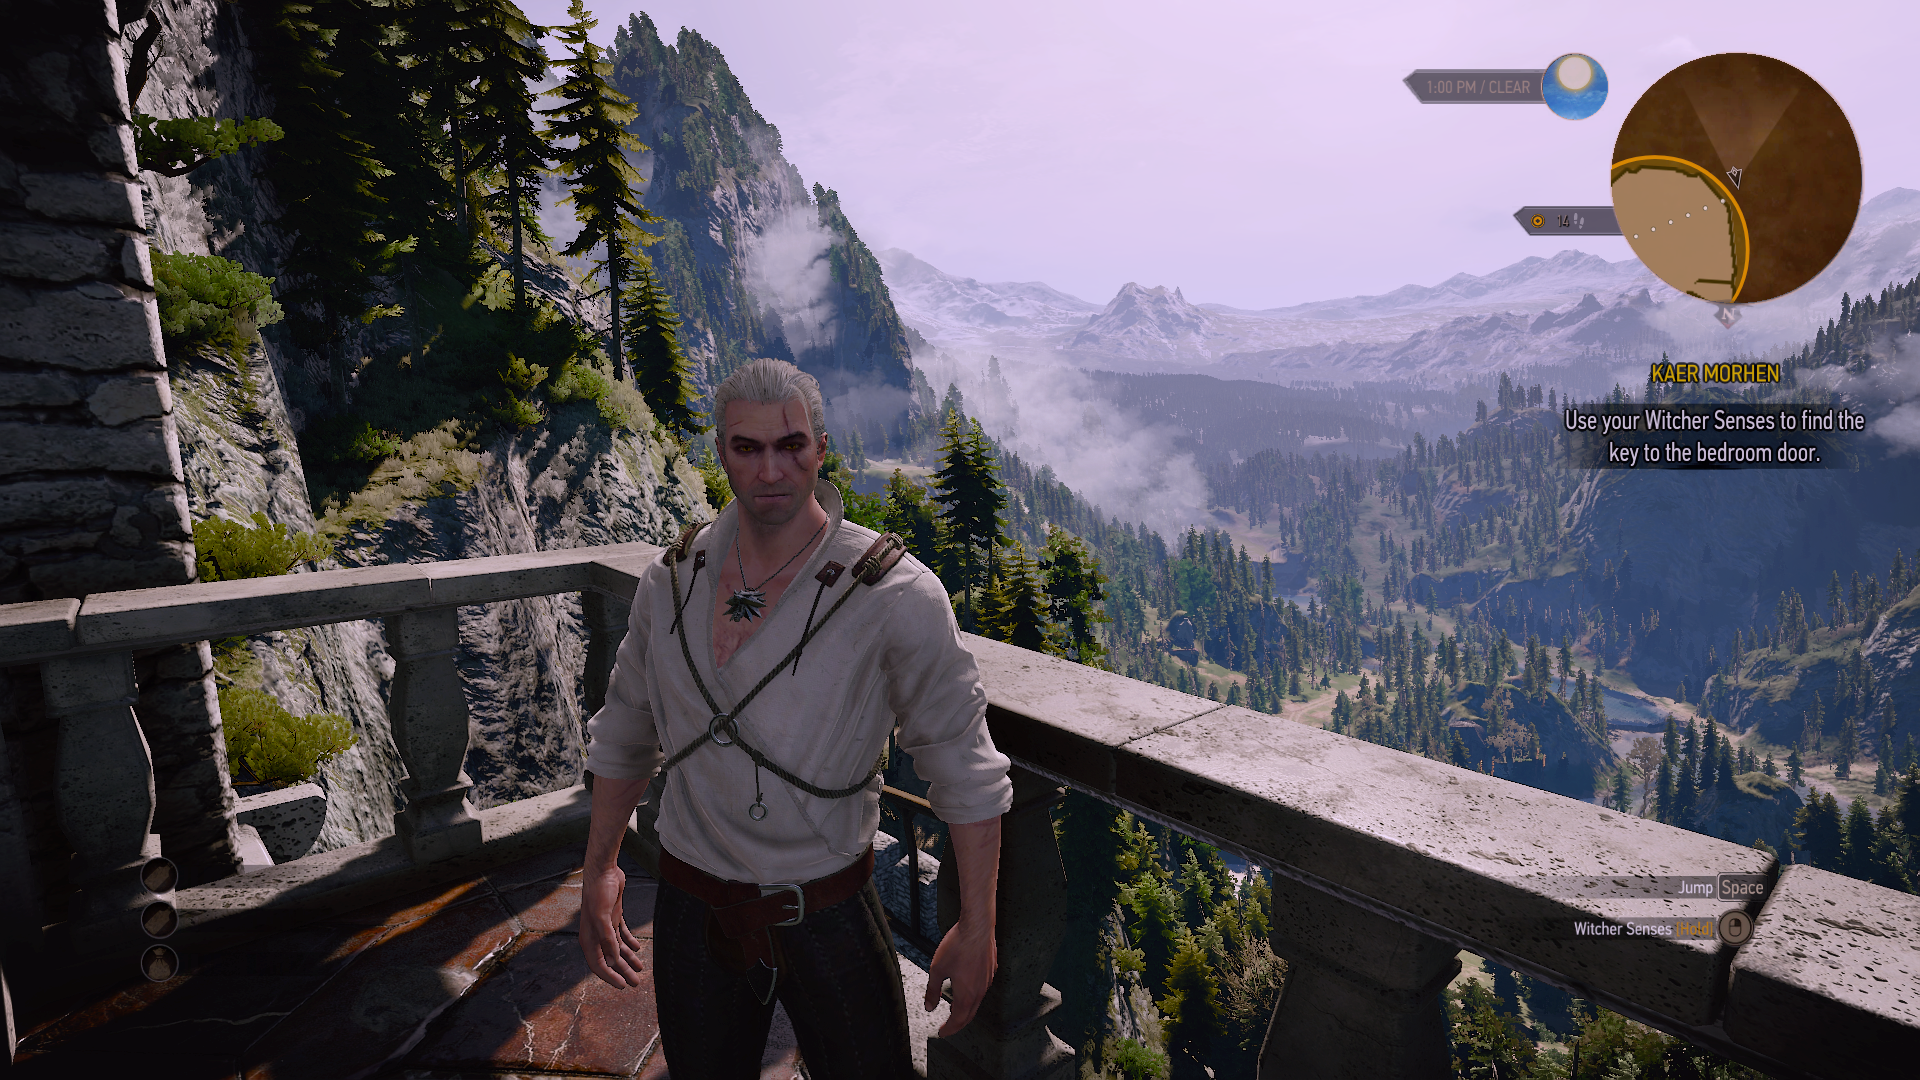 The Witcher 3 Ultra-pcgh